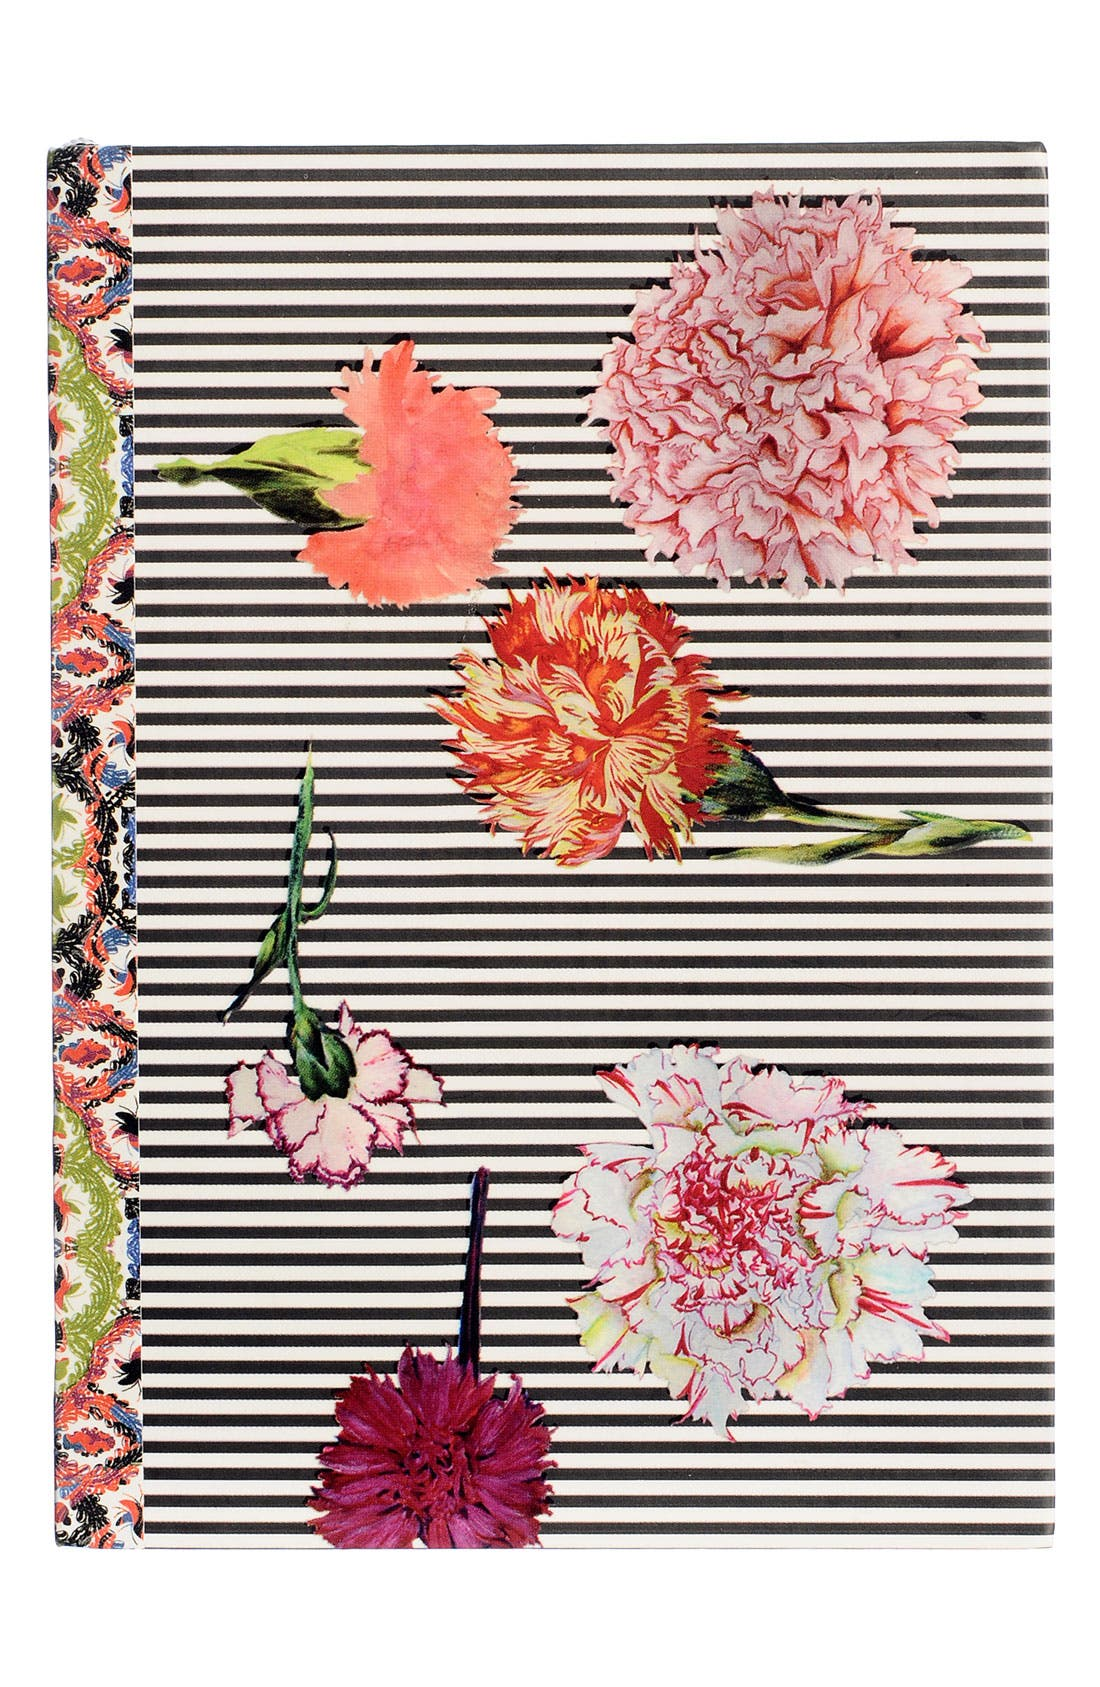 Alternate Image 1 Selected - Christian Lacroix 'Feria' Notebook